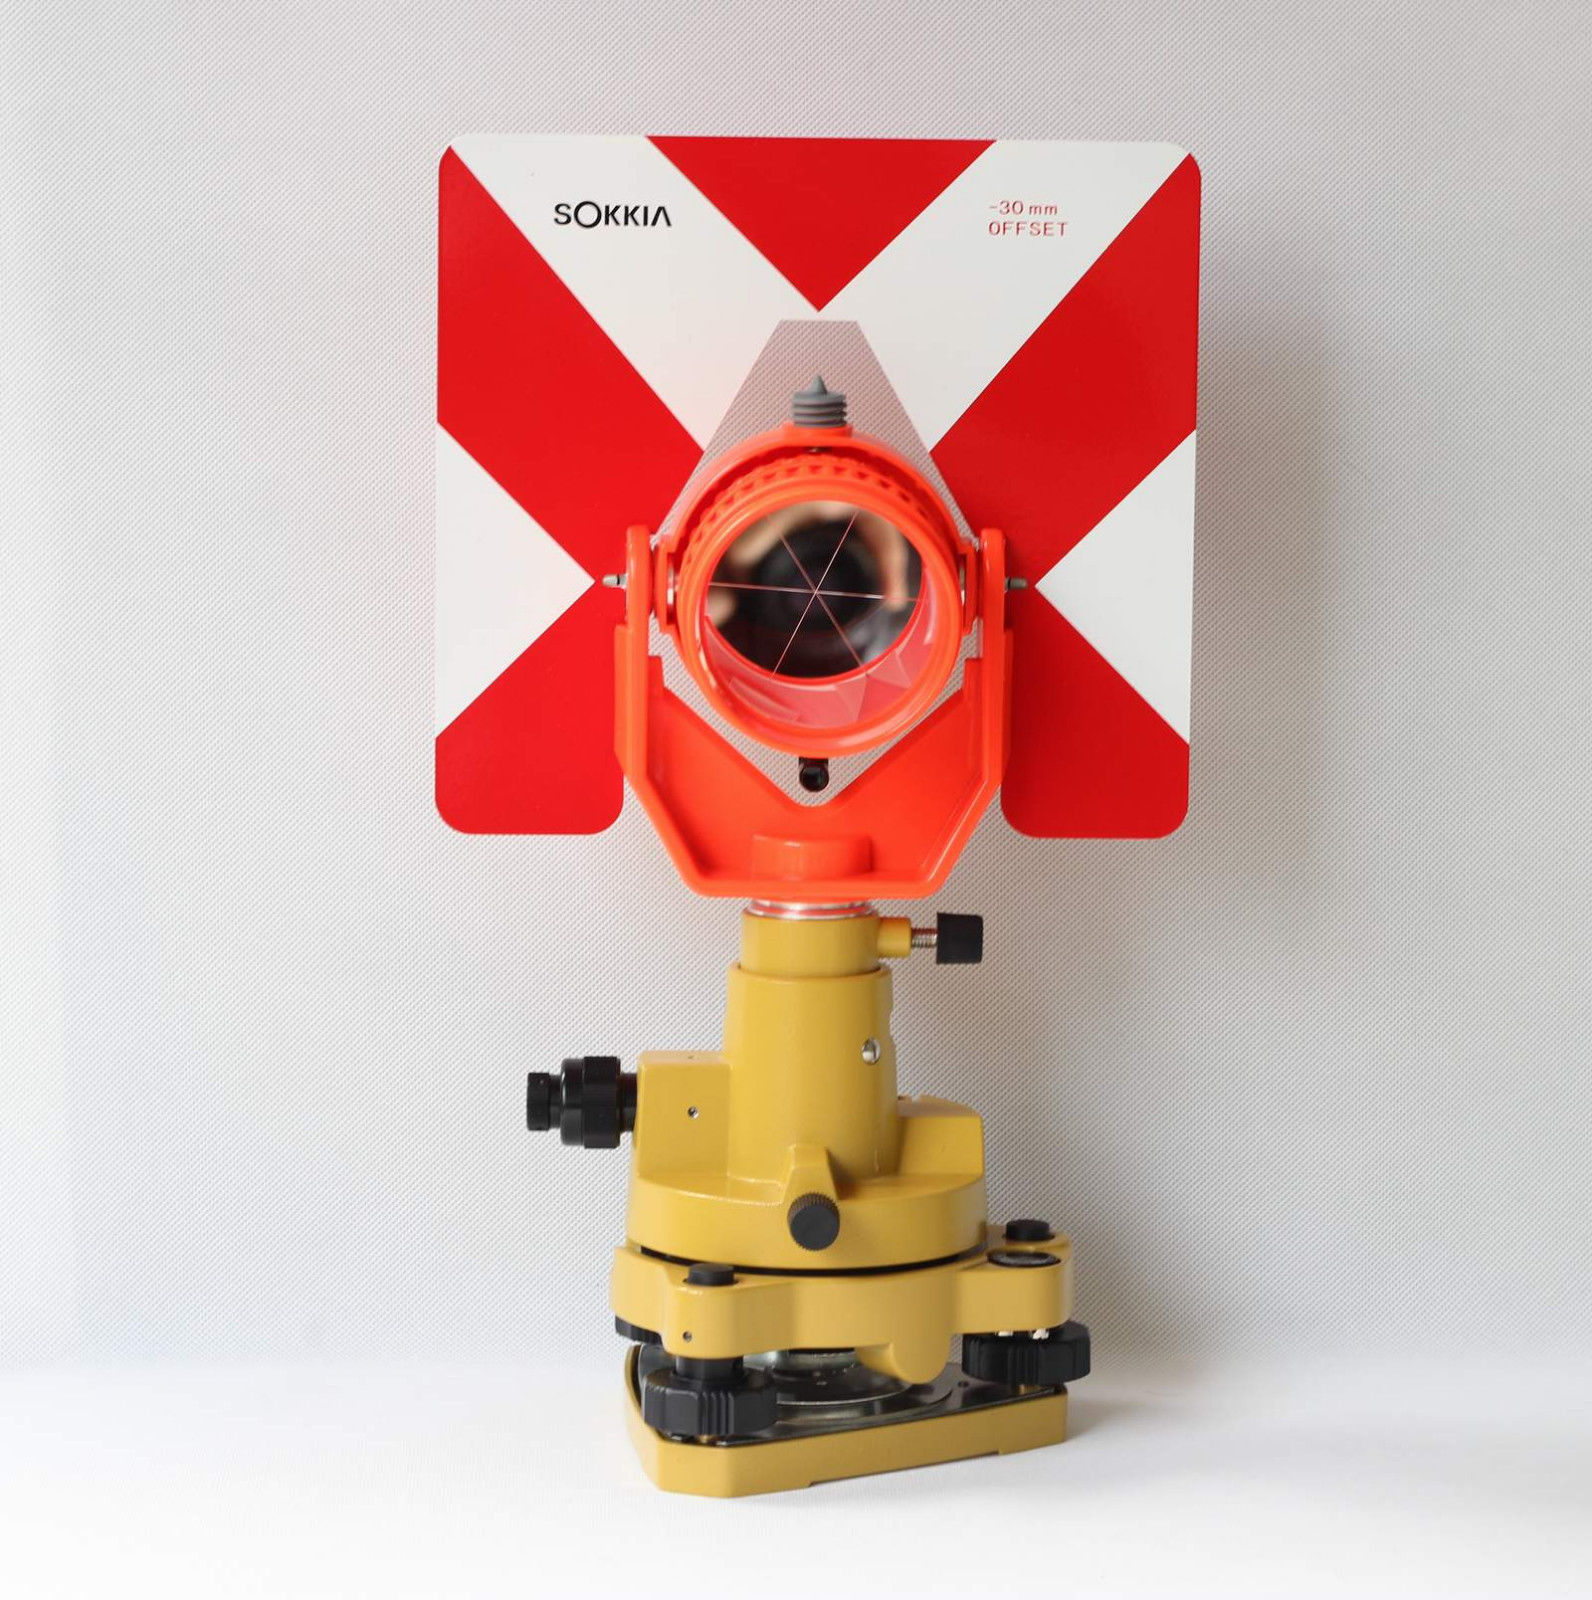 NEW Single Prism Tribrach Set system for total station surveying